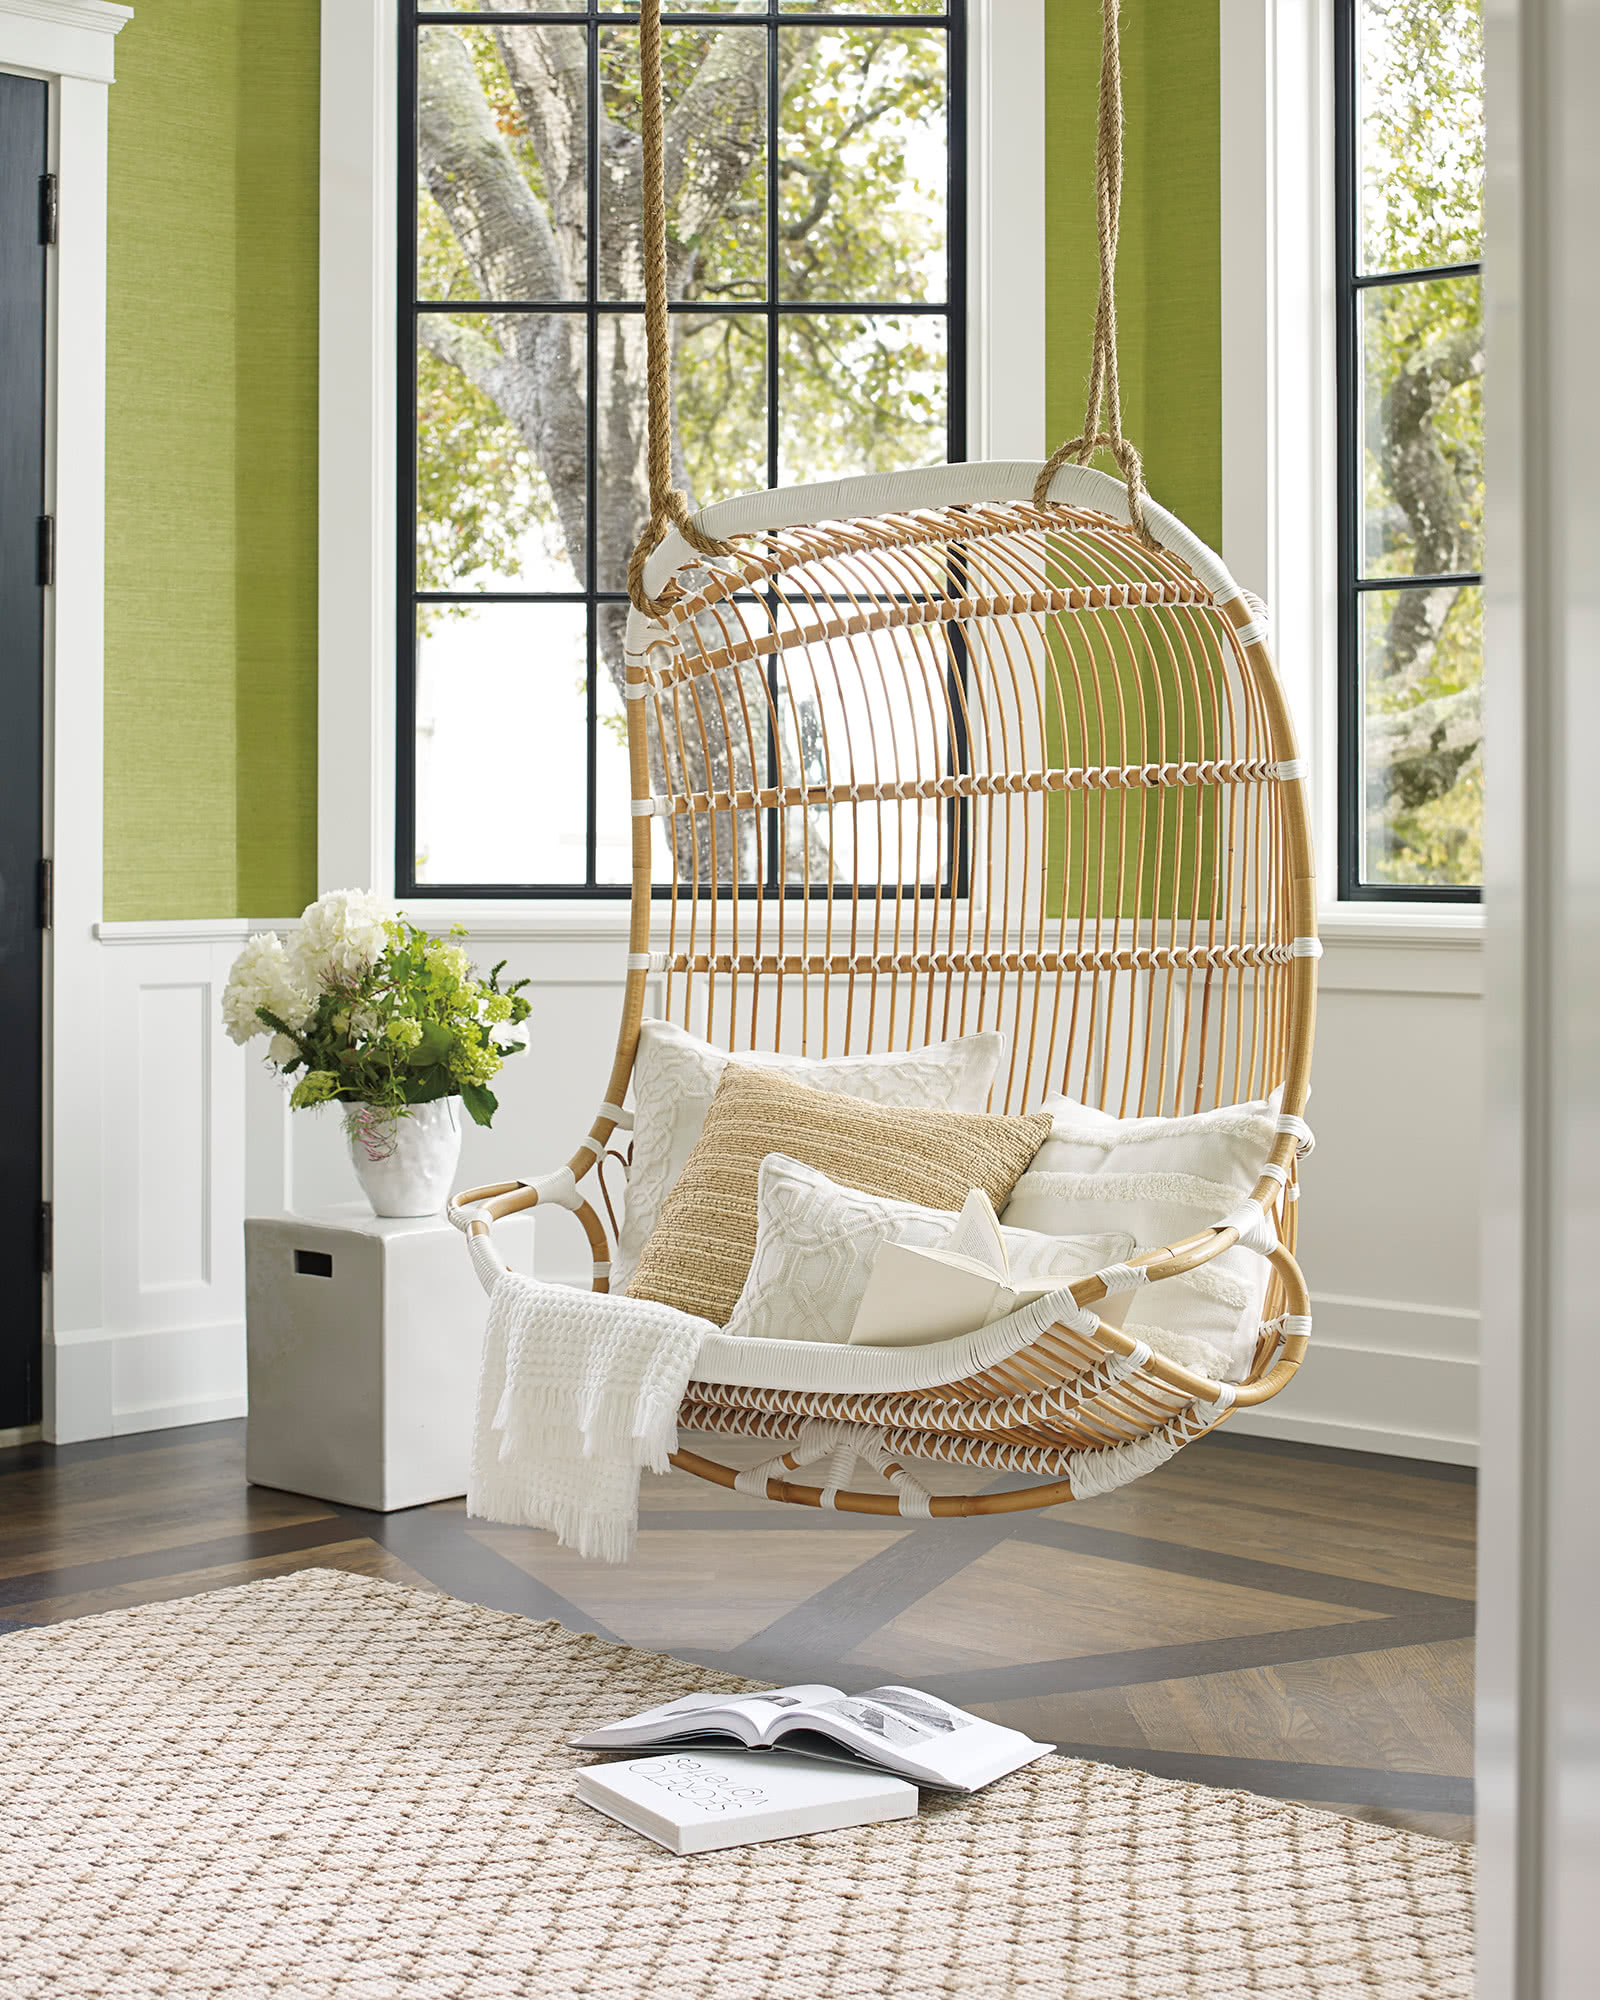 Why A Hammock Chair Is The Ideal Purchase During Corona Self Isolation Hanging Chairs